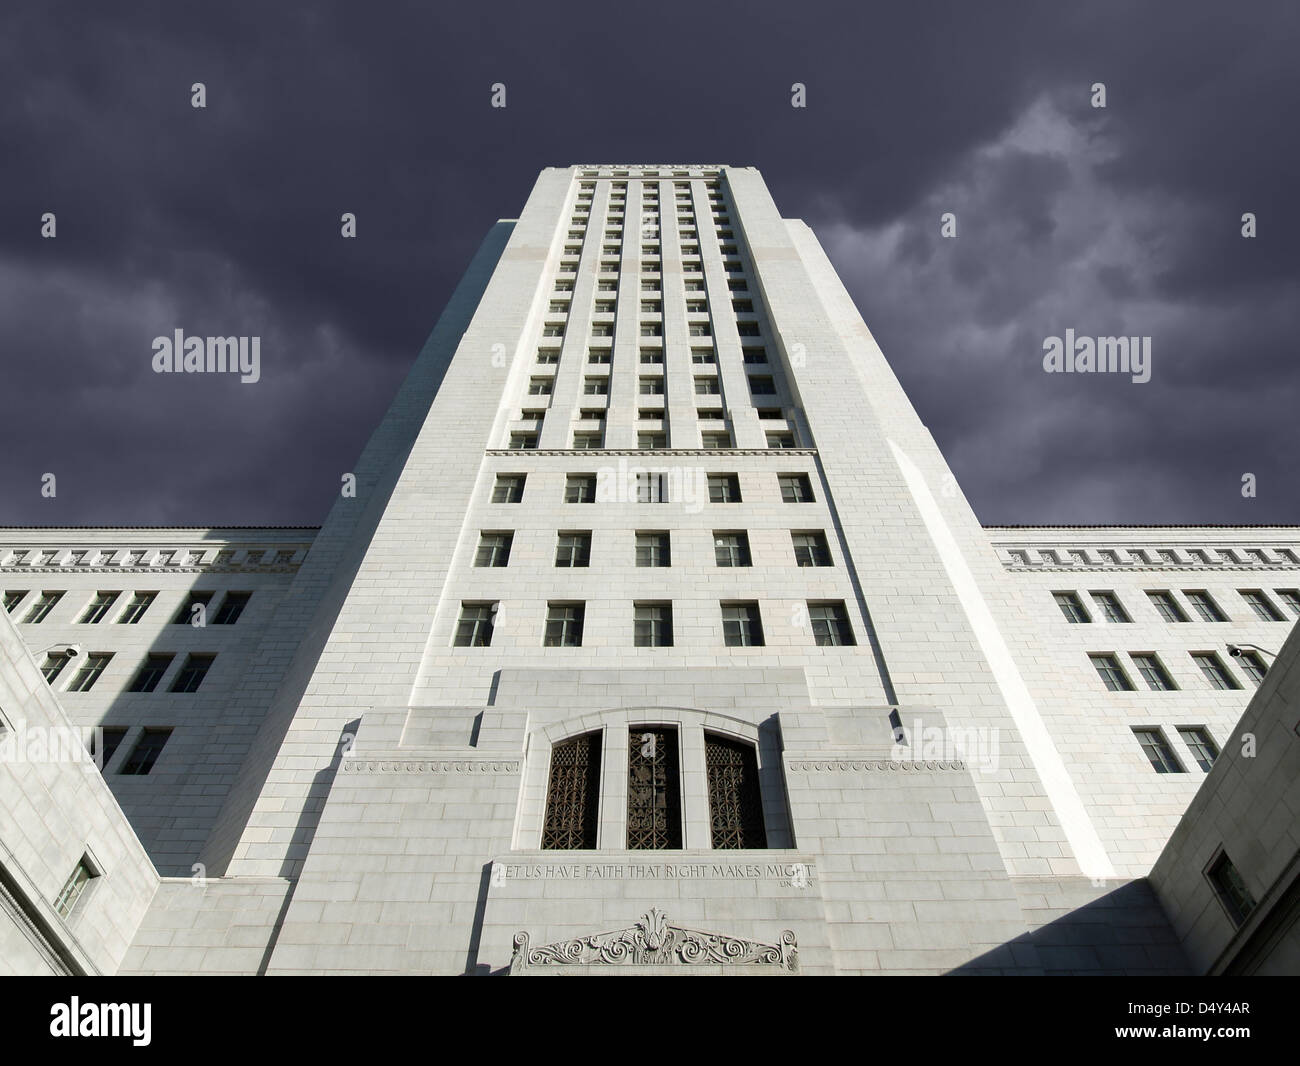 Thunder storm sky over the Los Angeles city hall in Southern California. - Stock Image